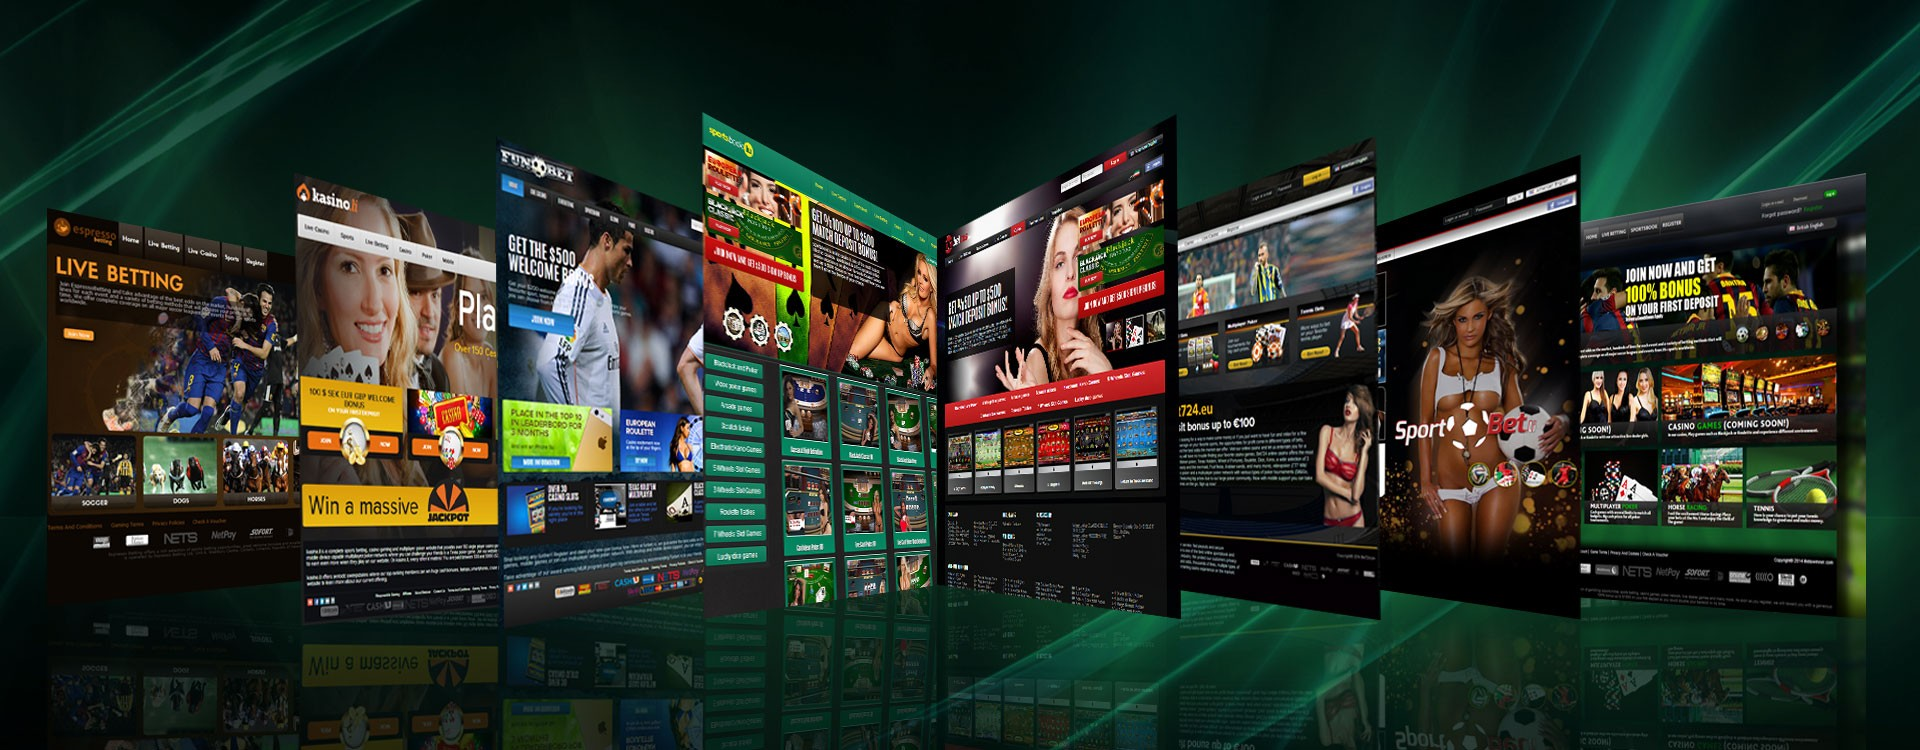 where is the best place to bet on sports online